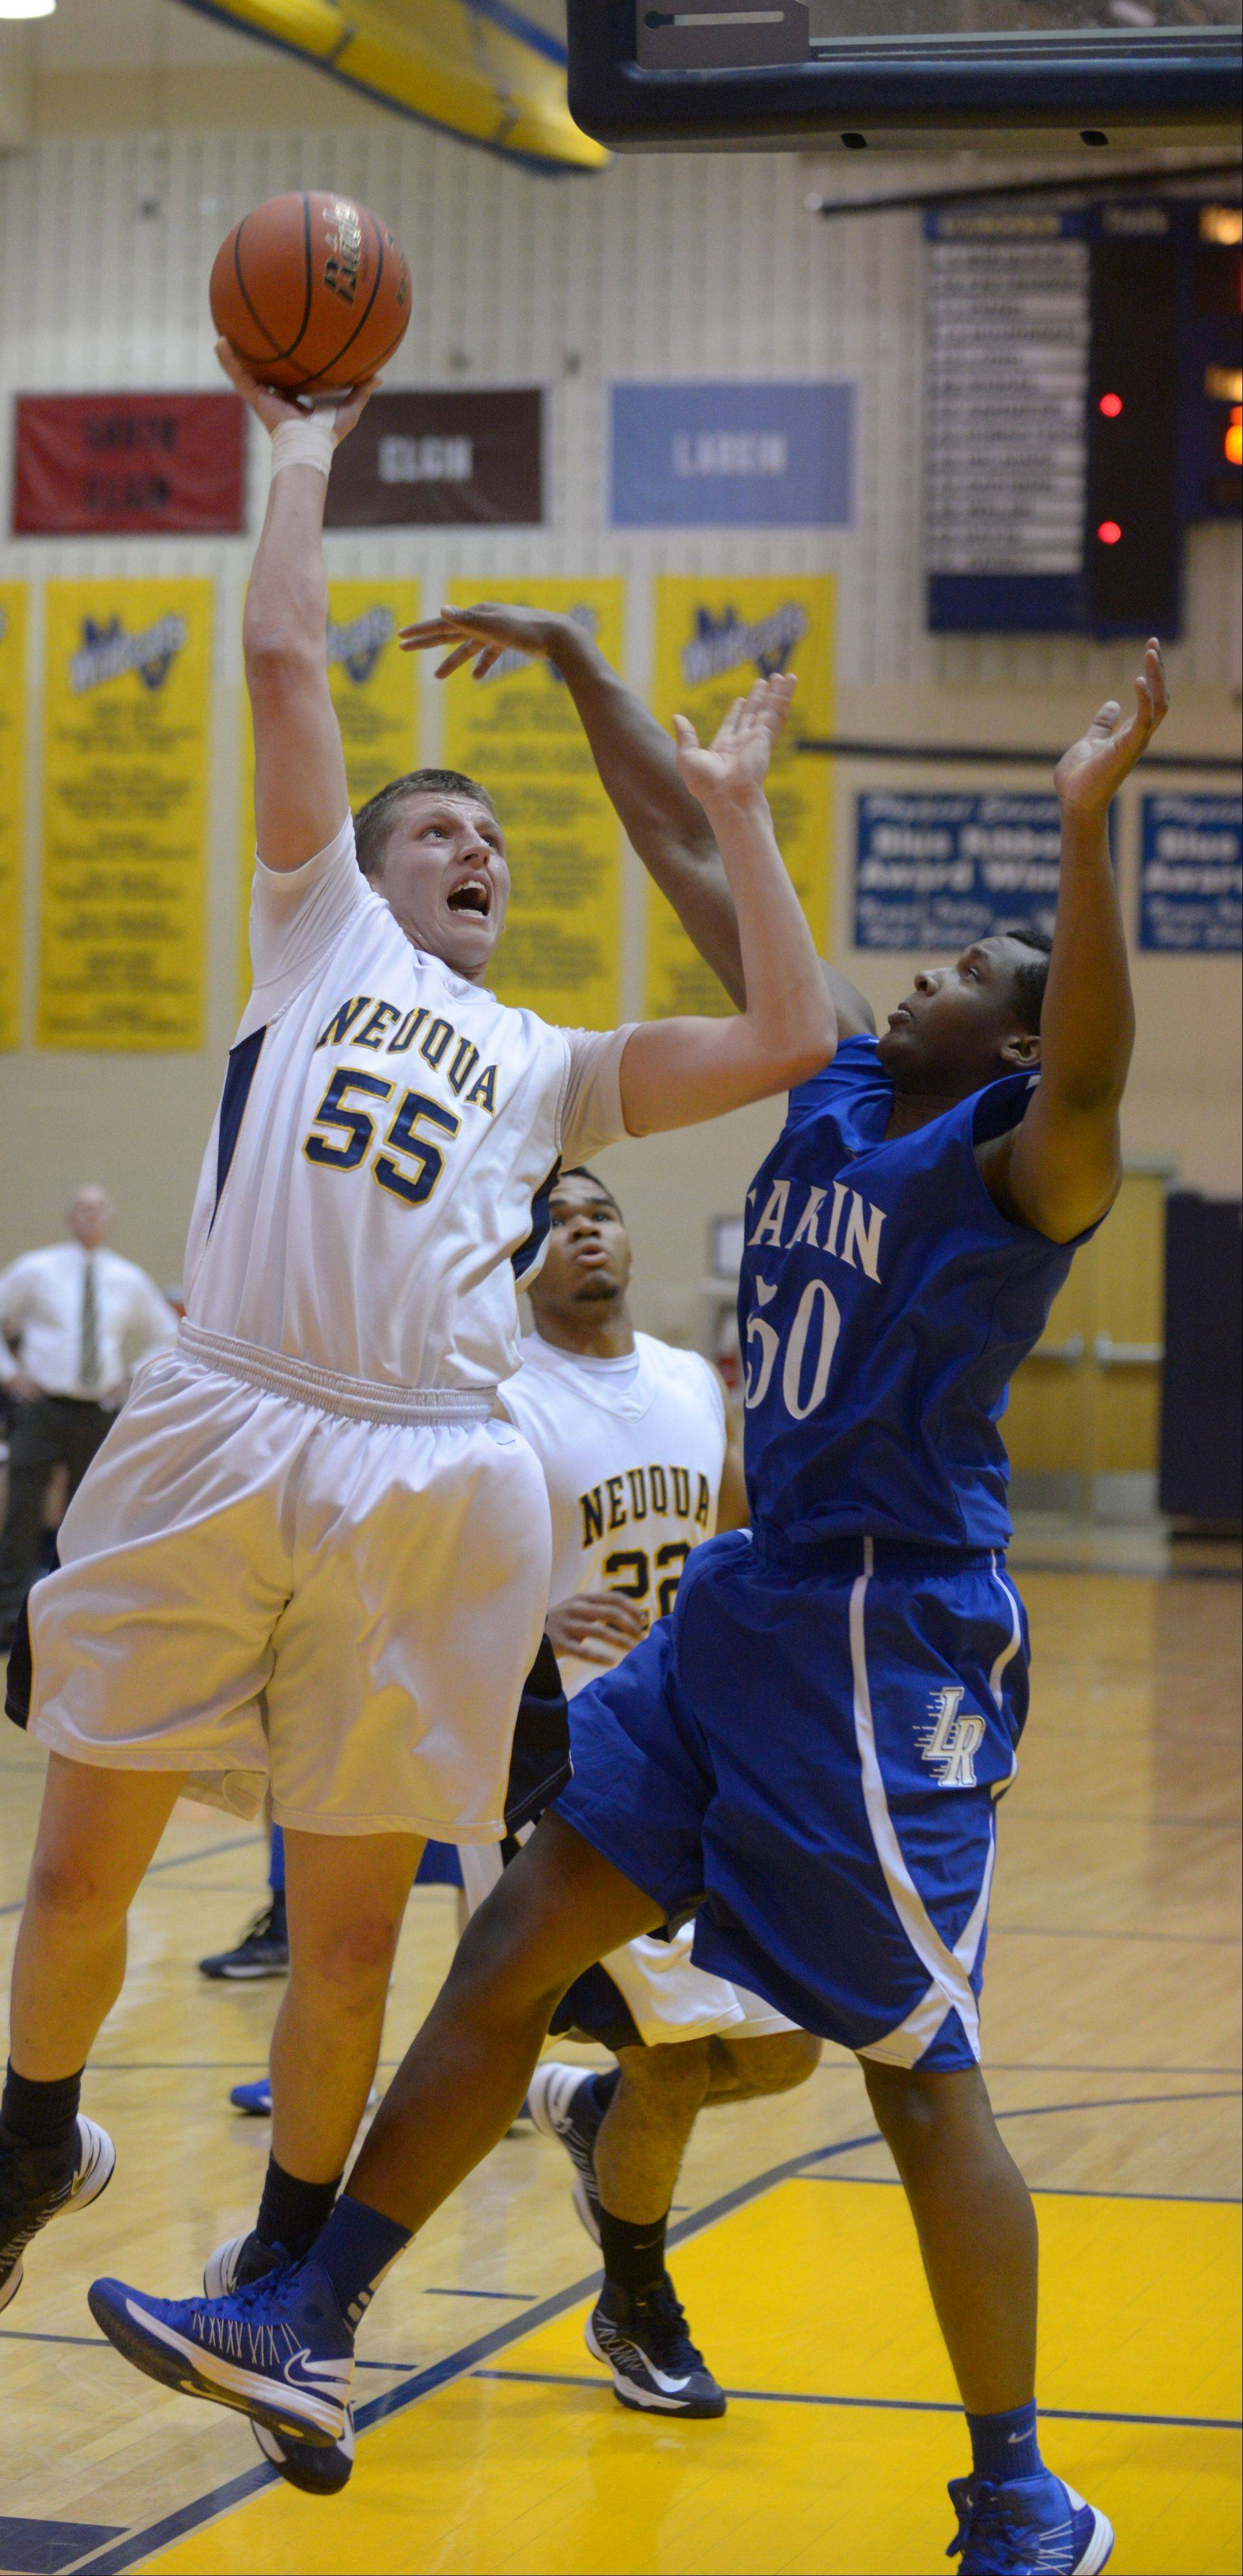 Pat Kenny,left, of Neuqua Valley takes a shot while Daniel McFadden of Larkin blocks.